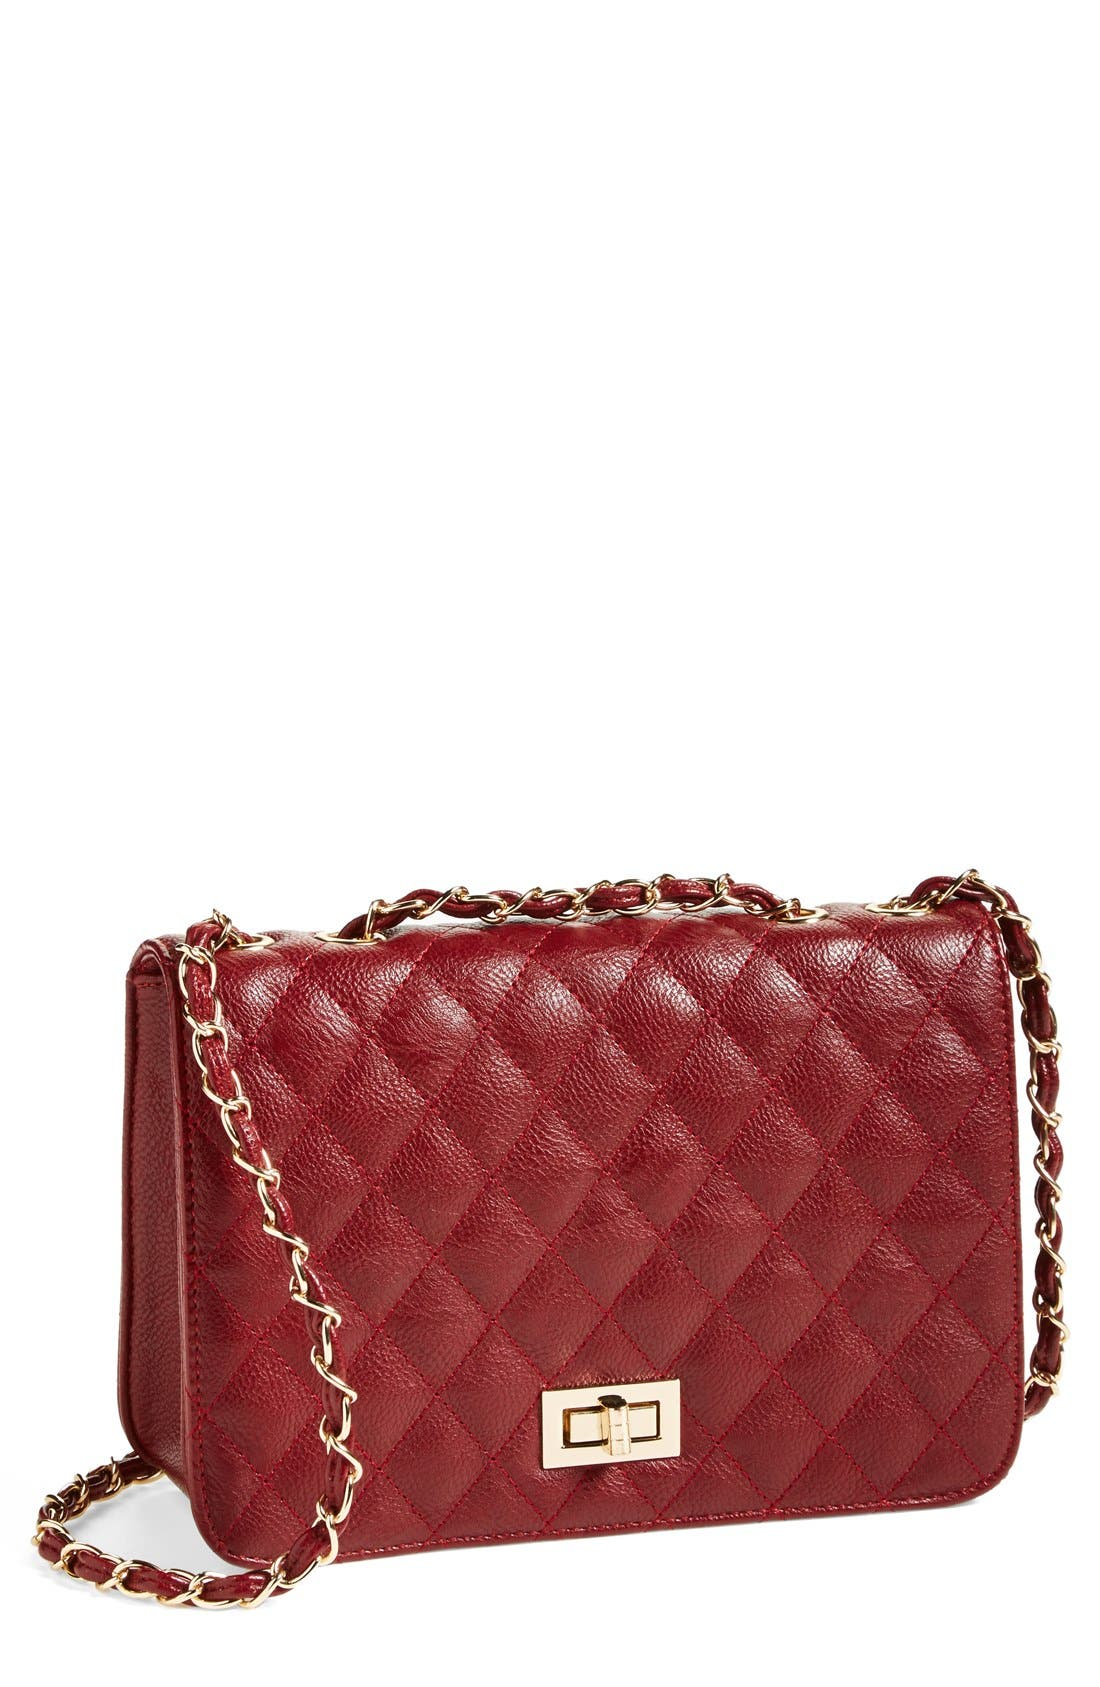 Alternate Image 1 Selected - NB Handbags Quilted Convertible Crossbody Bag (Juniors) (Online Only)